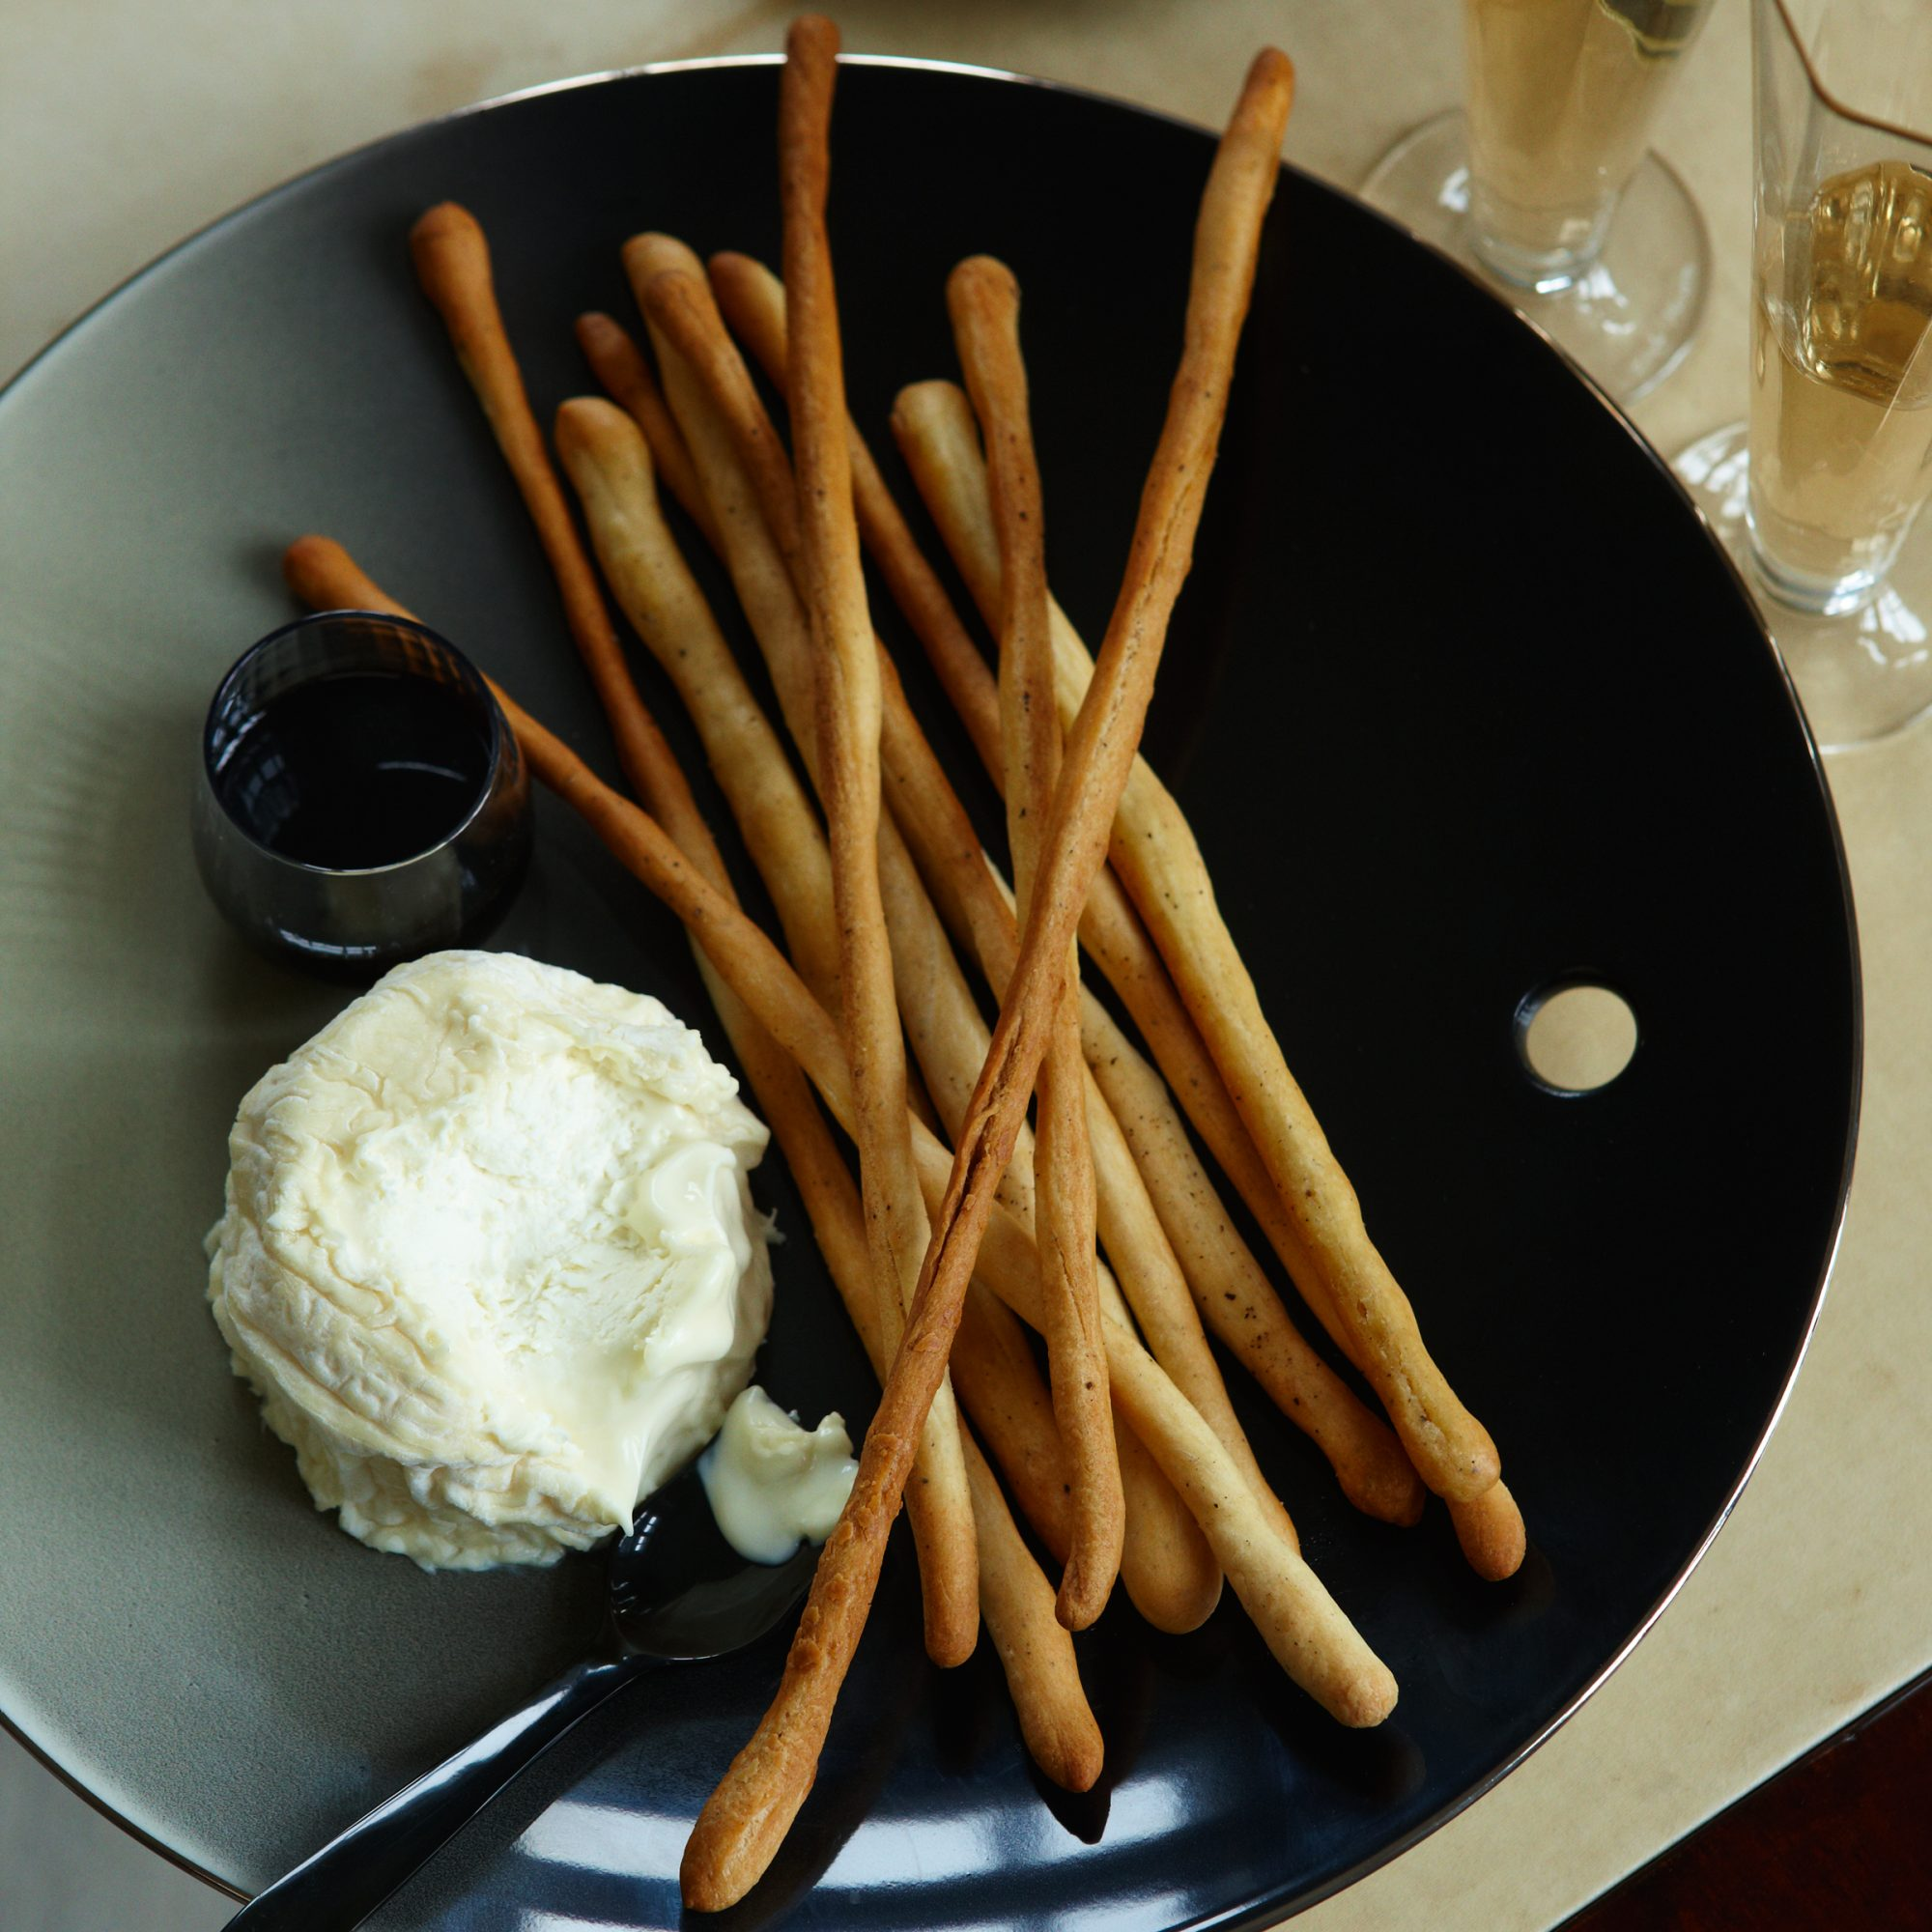 201012-r-breadsticks.jpg